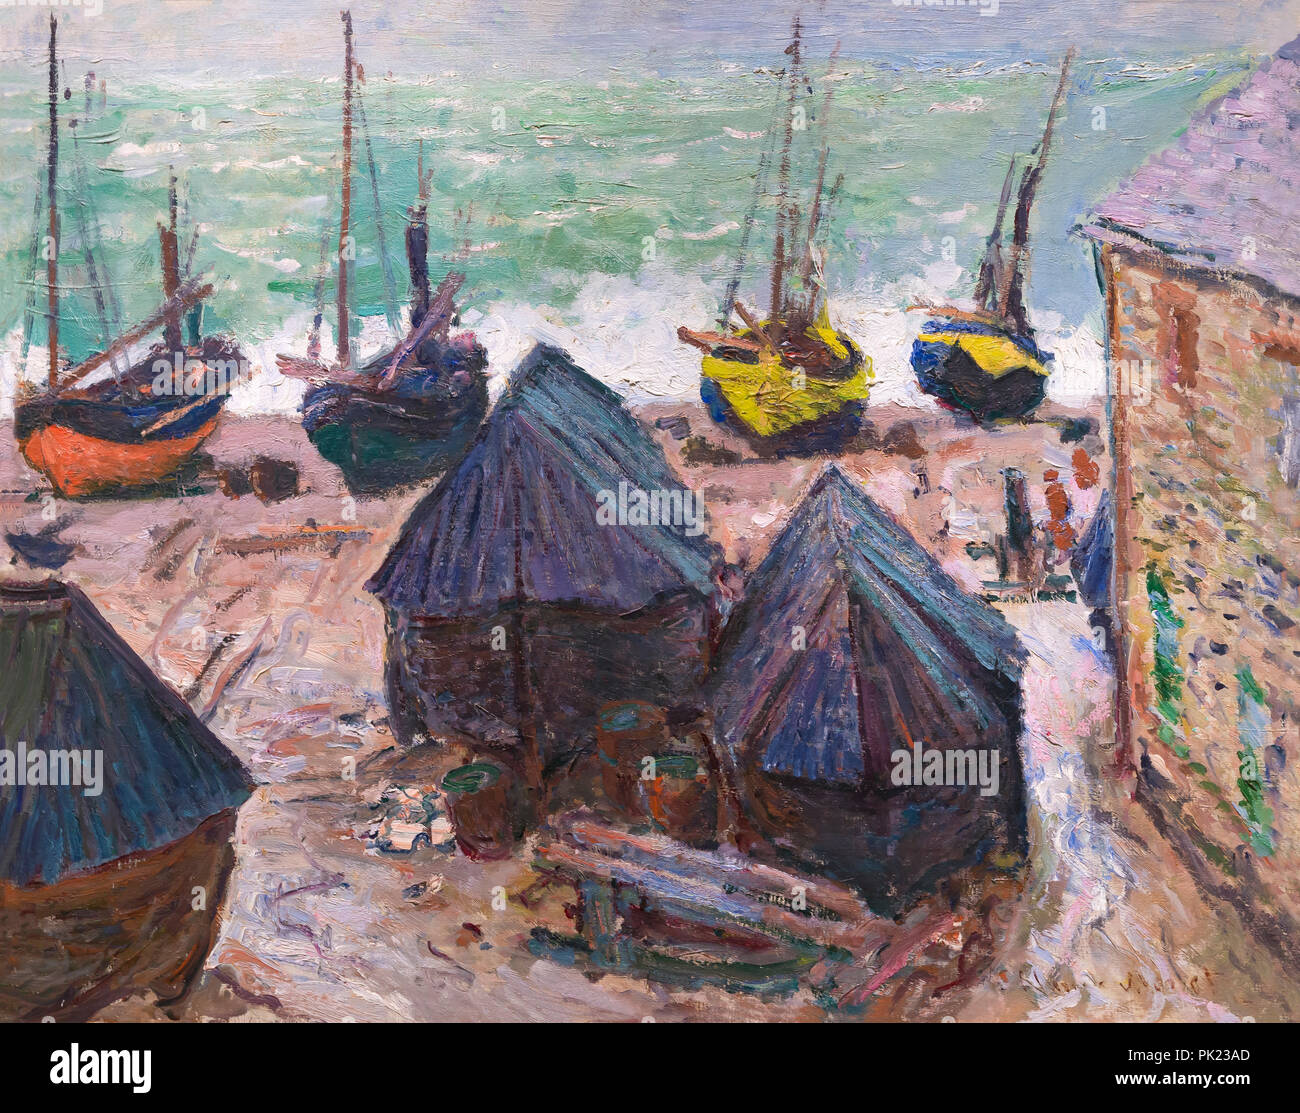 Boats on a Beach at Etretat, Claude Monet, 1885, Art Institute of Chicago, Chicago, Illinois, USA, North America, - Stock Image